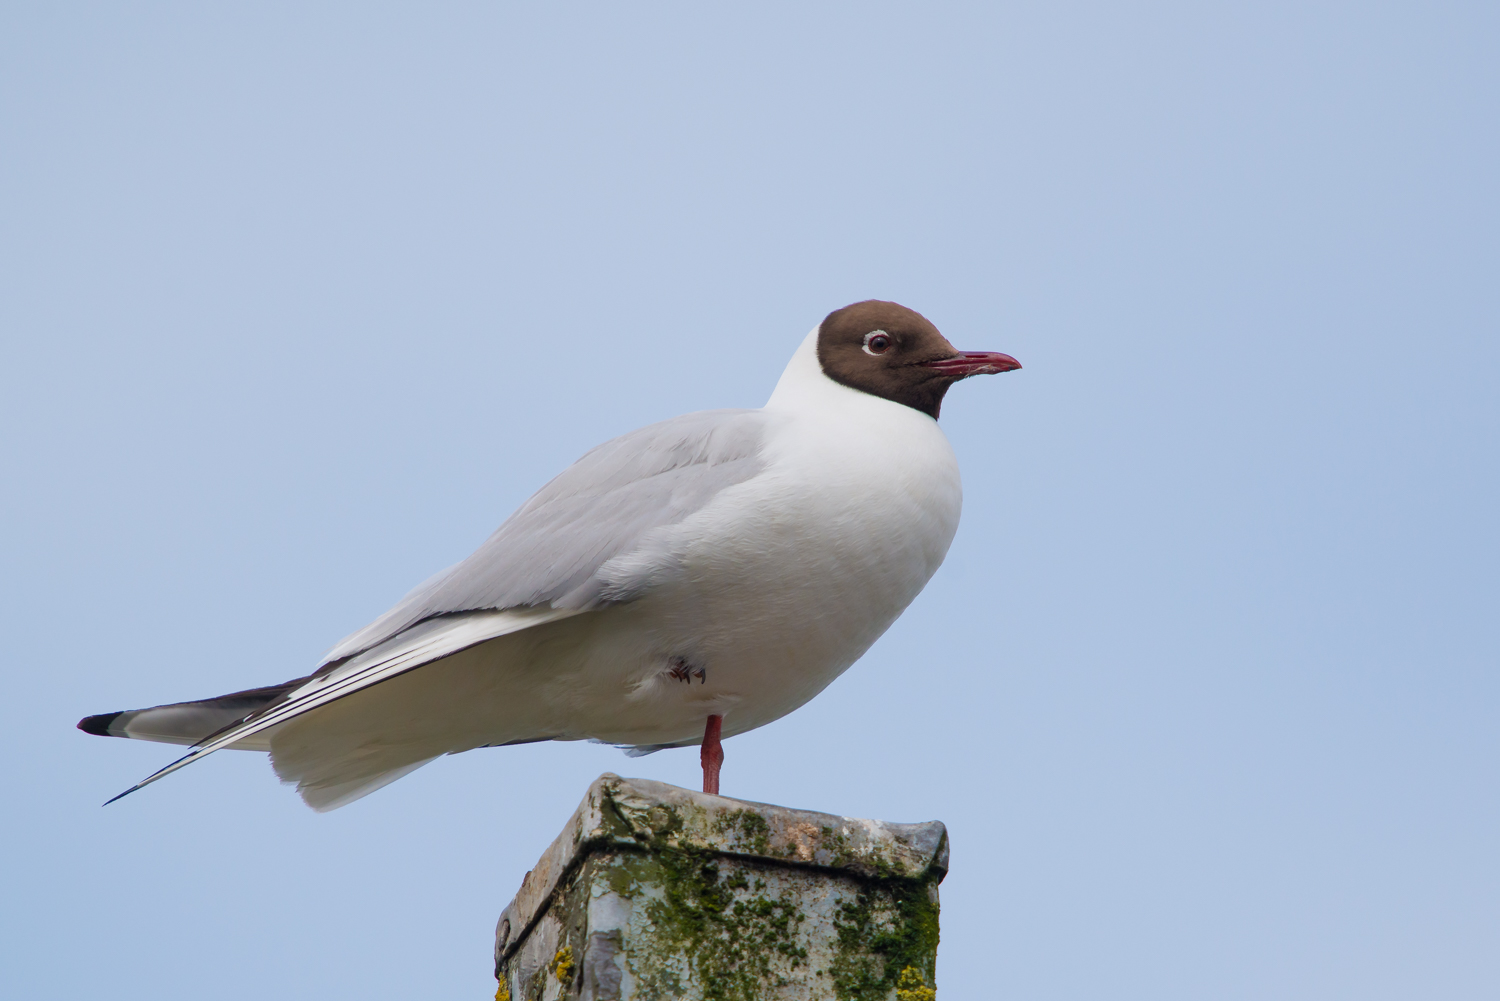 Black-headed Gull, UK birds, wildlife